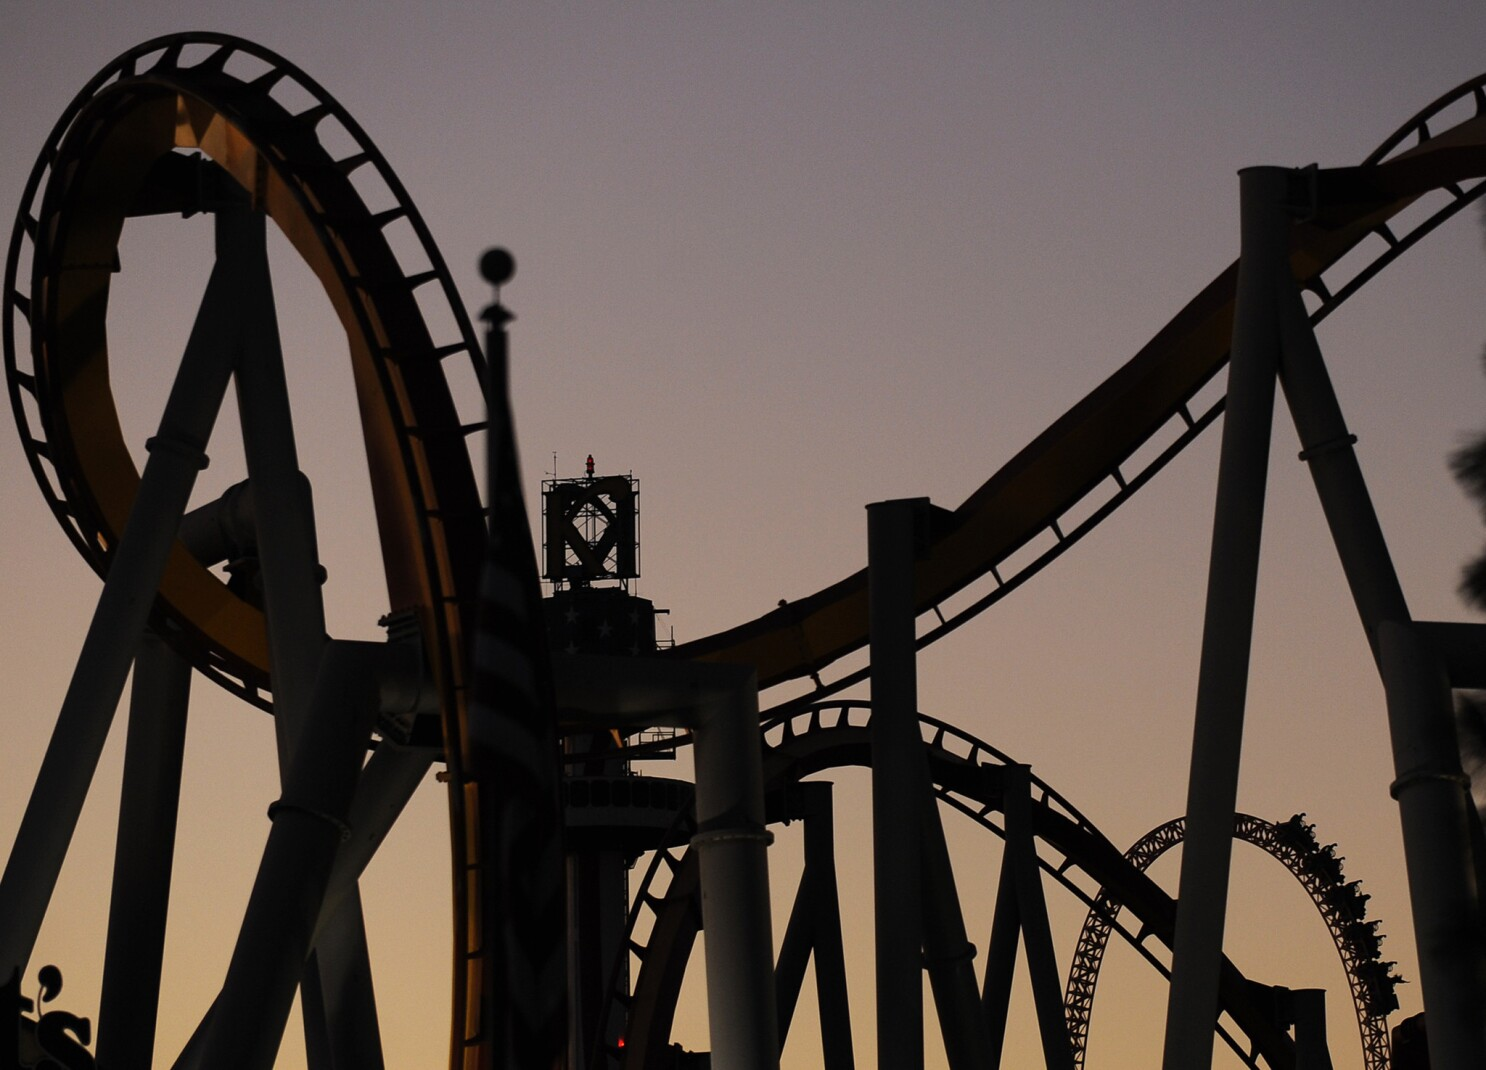 Pack Your Sleeping Bag For A Camp Out At Knott S Berry Farm And Other Roller Coaster Parks Los Angeles Times